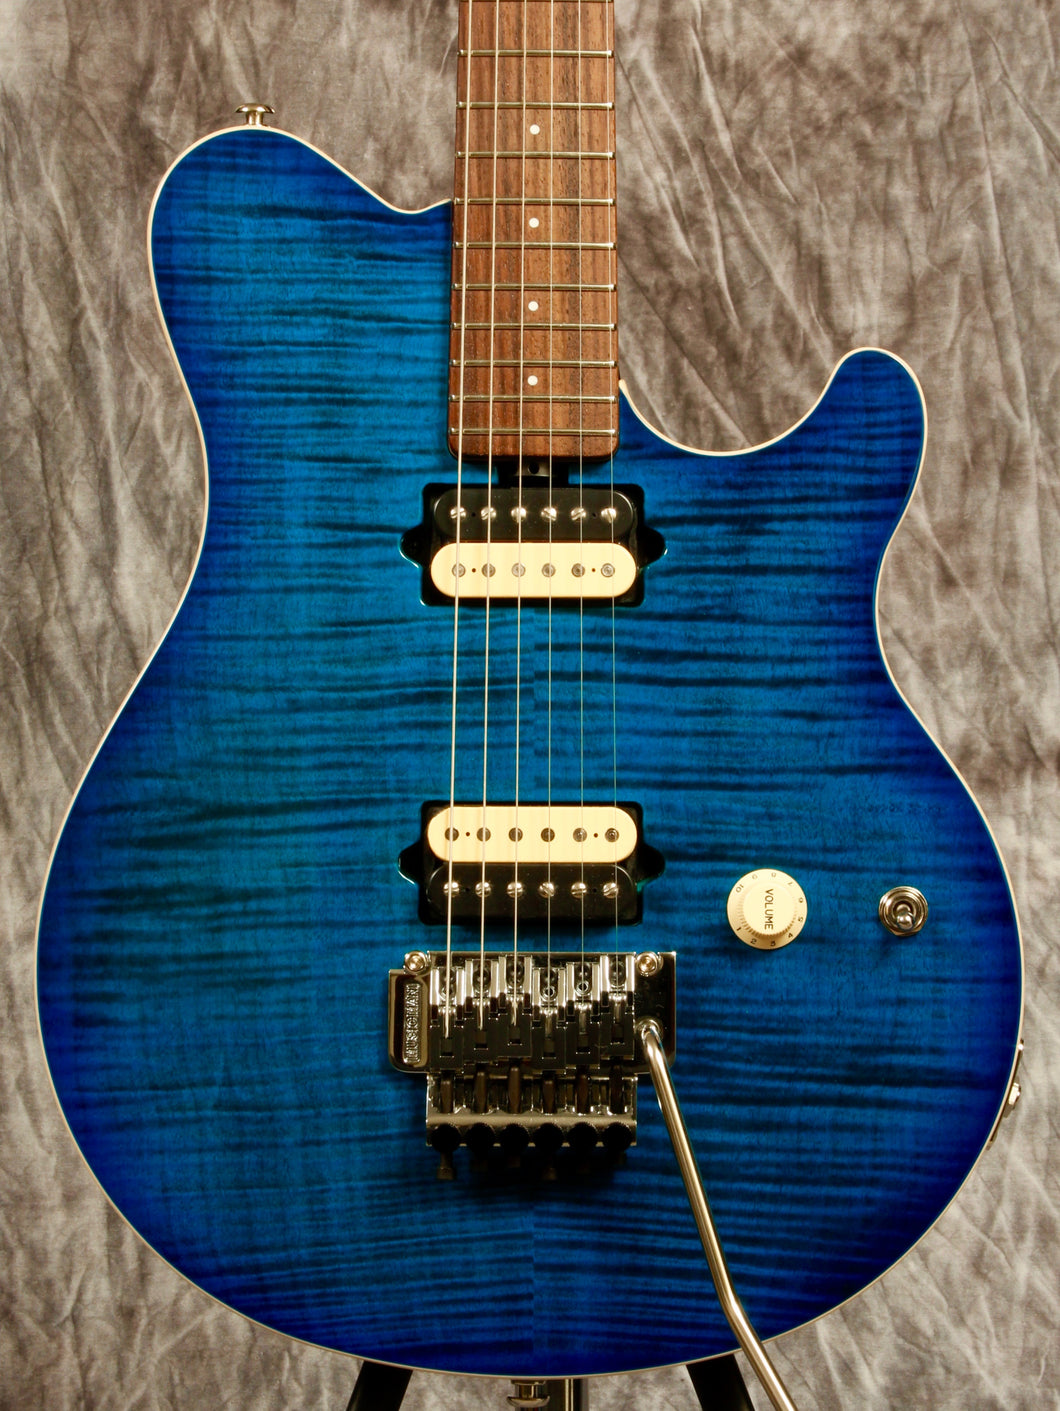 Ernie Ball Music Man Axis - Mojo's Music